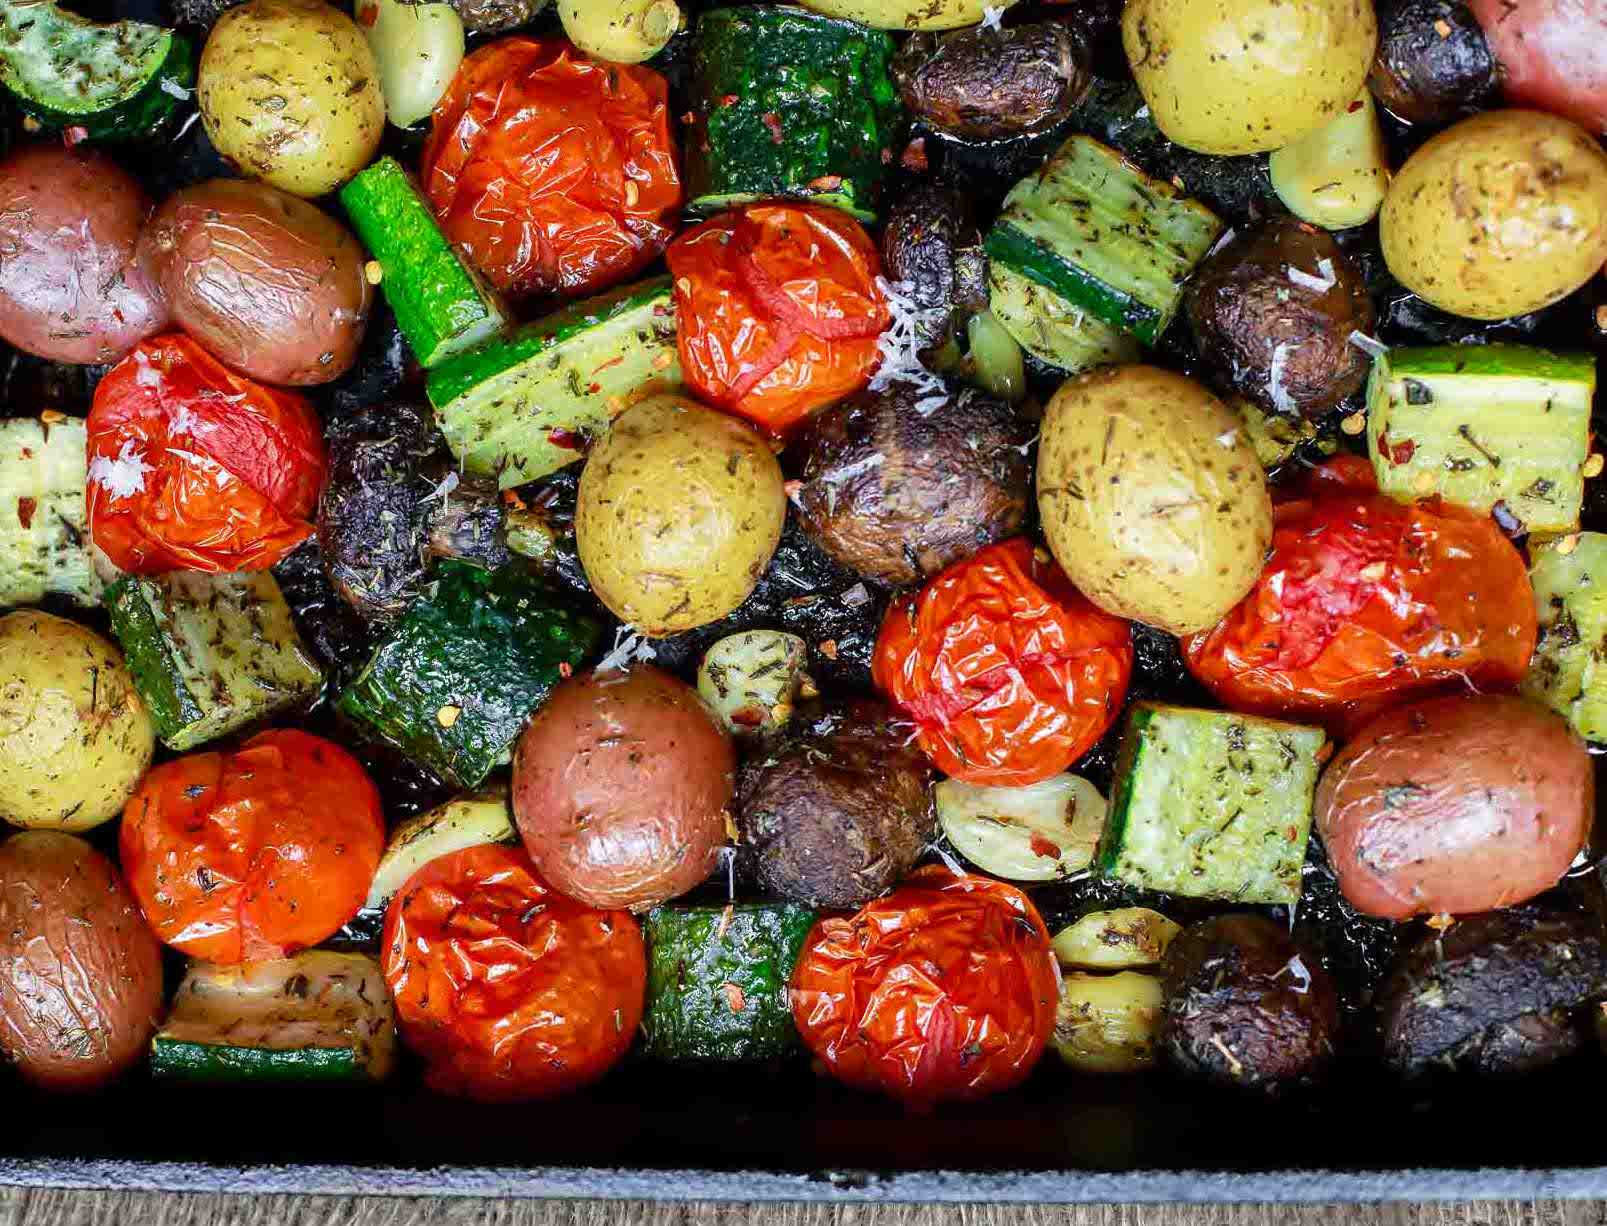 45 Minute Oven-Roasted Vegetables